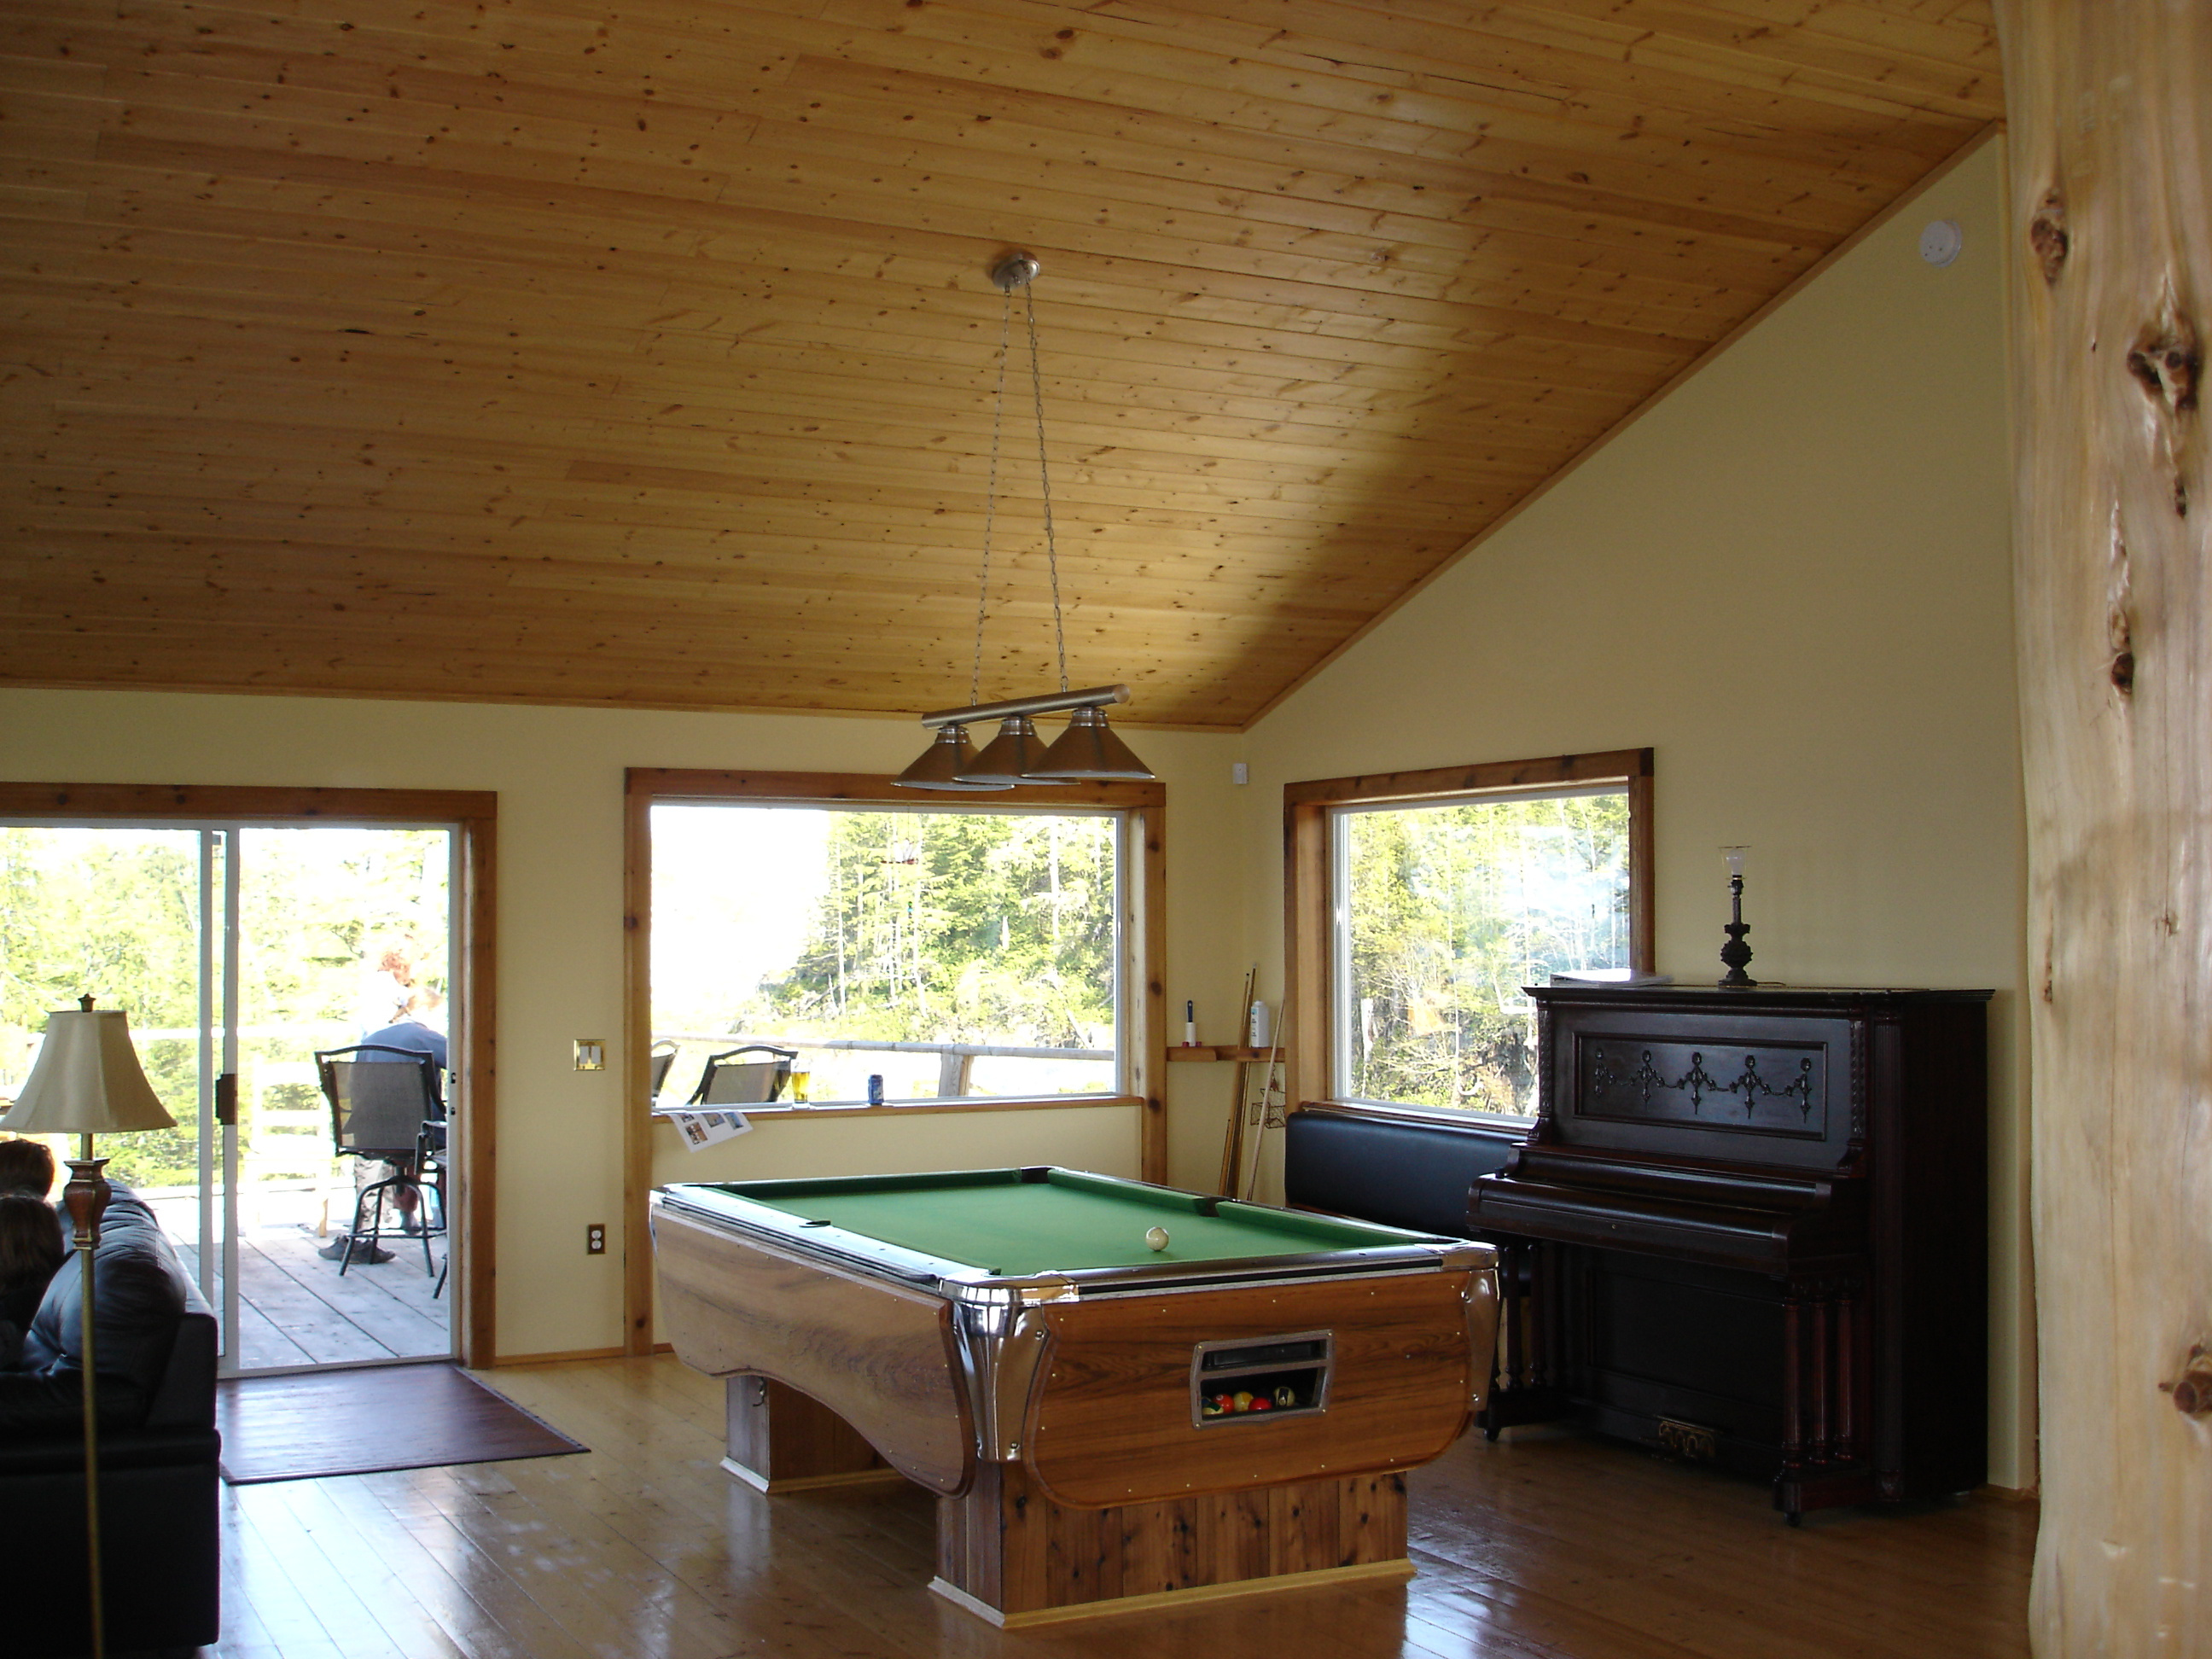 https://0901.nccdn.net/4_2/000/000/061/438/pool-table-and-deck-view-2592x1944.jpg